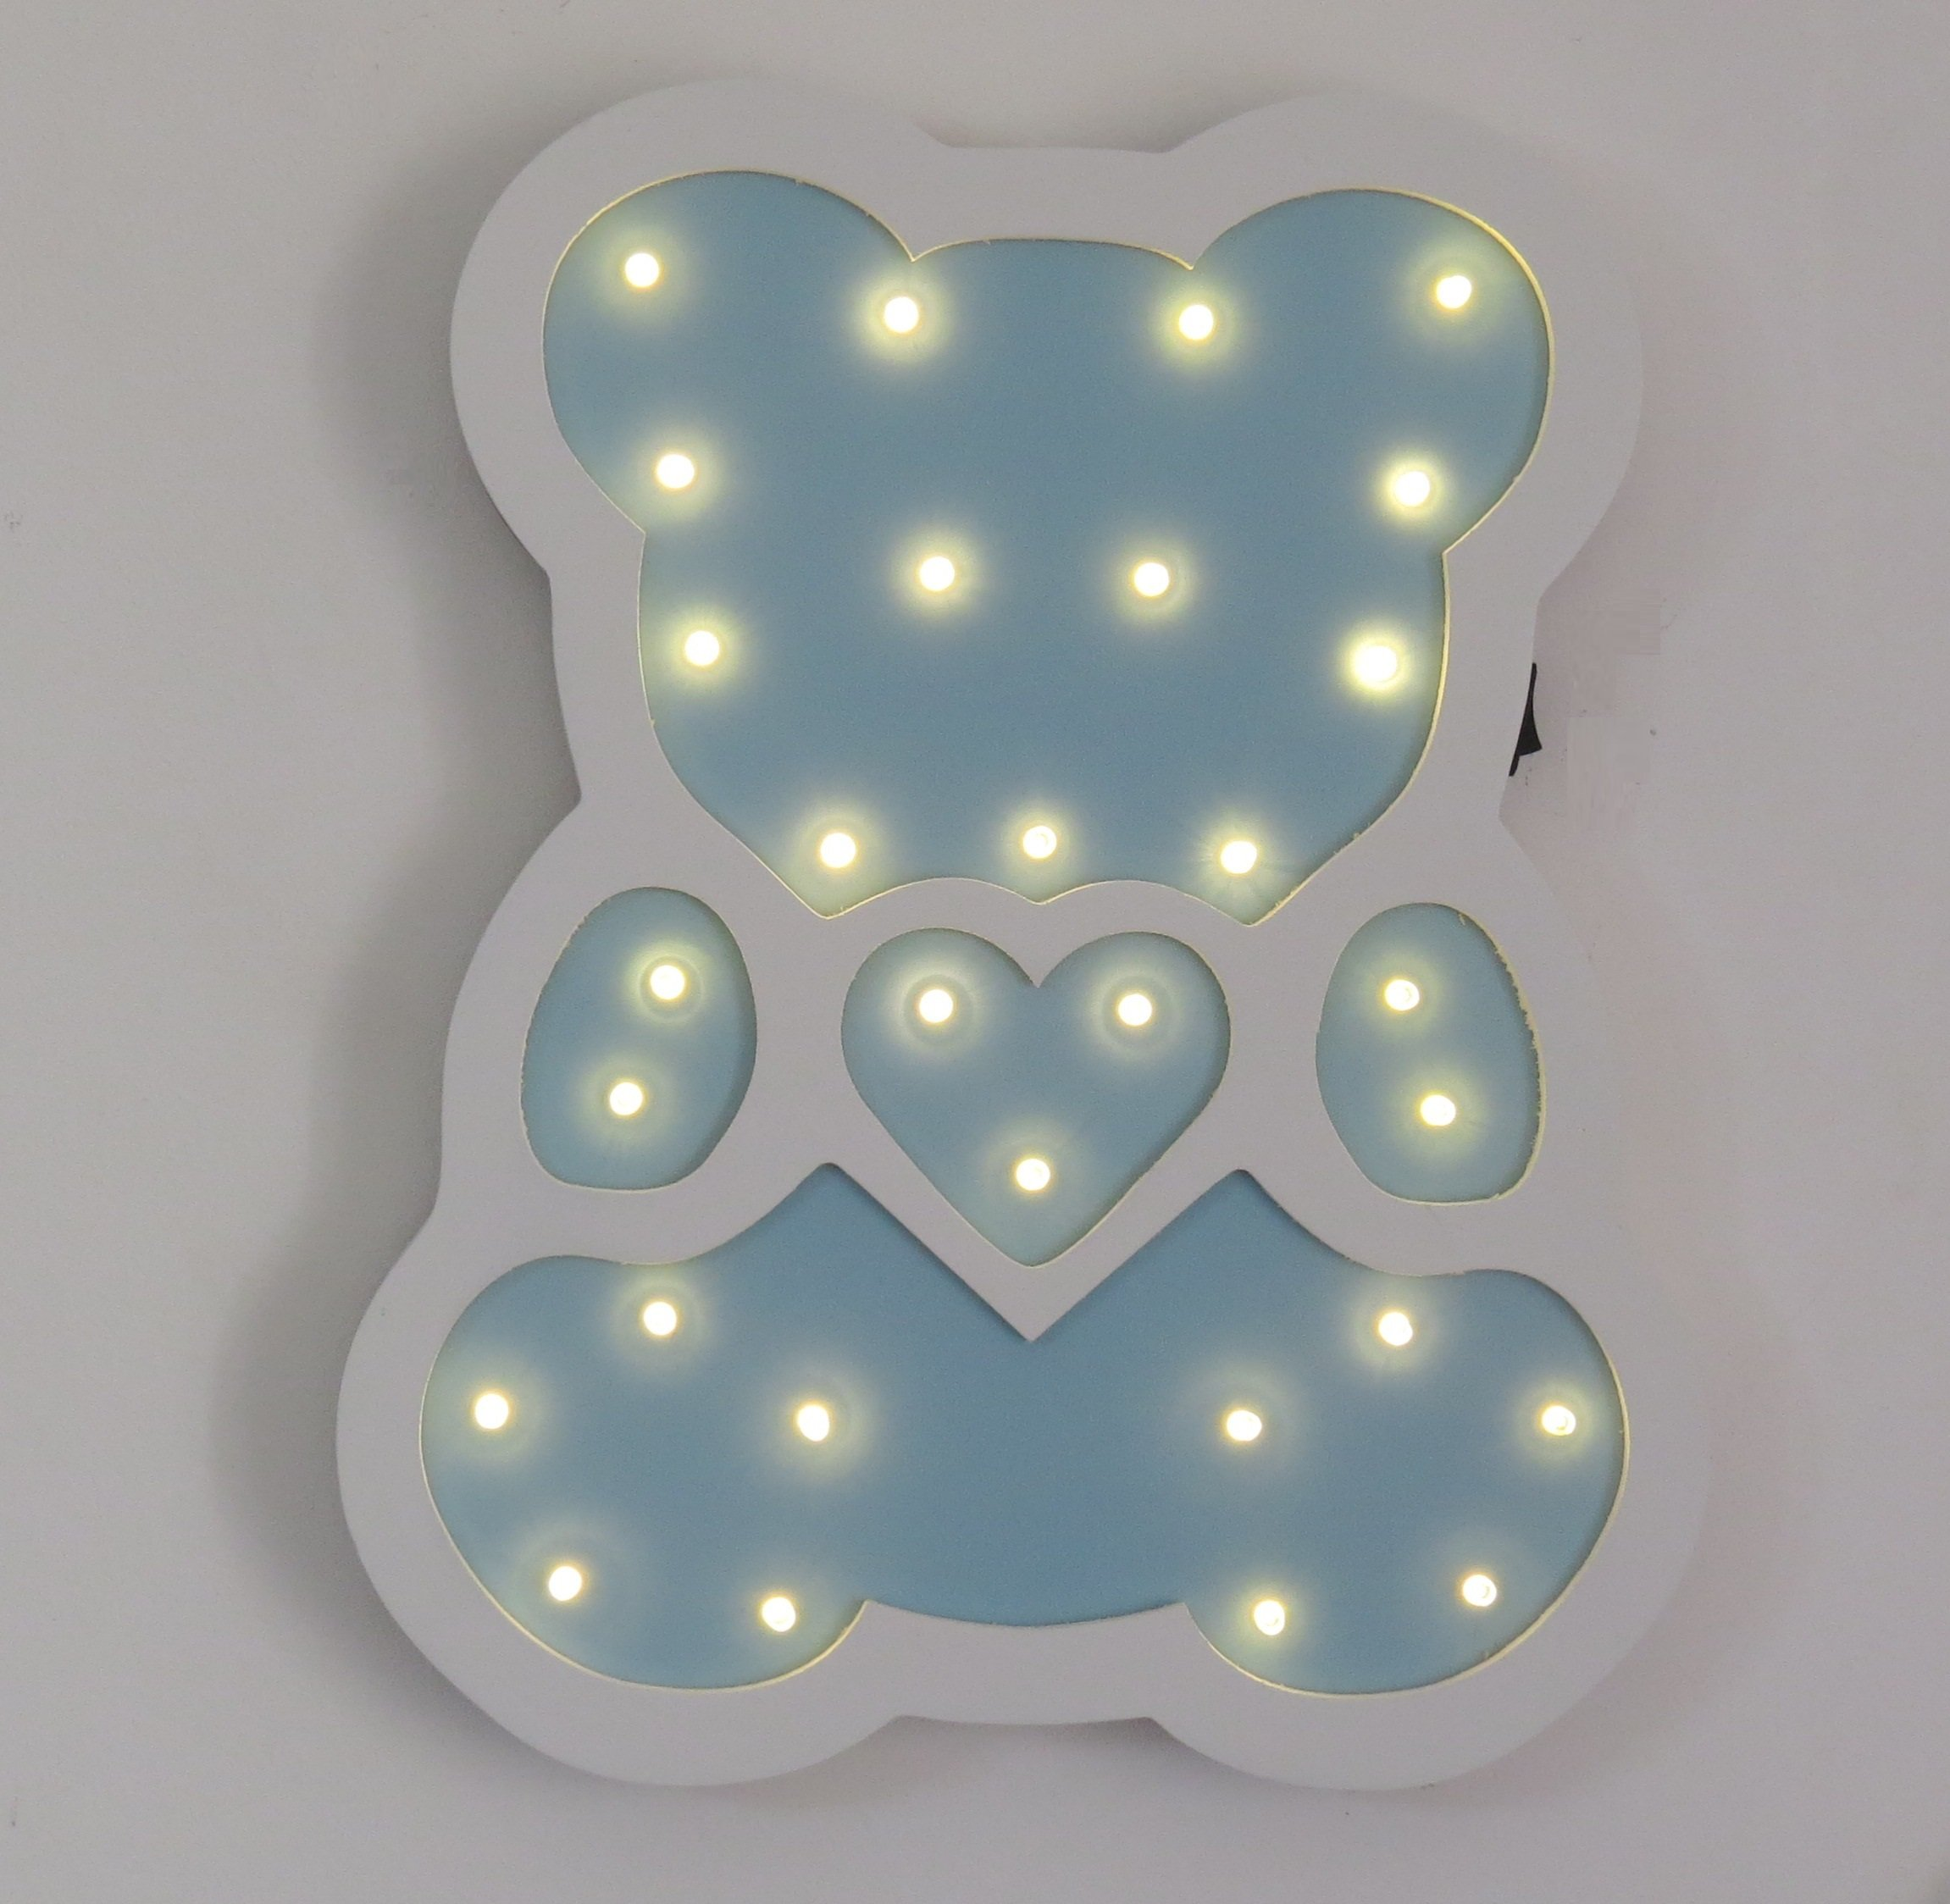 Night Lights LED Wooden Decorative Table Lamps for Nursery Decor,Kid's Room,Home Decor &Gifts (Bear)